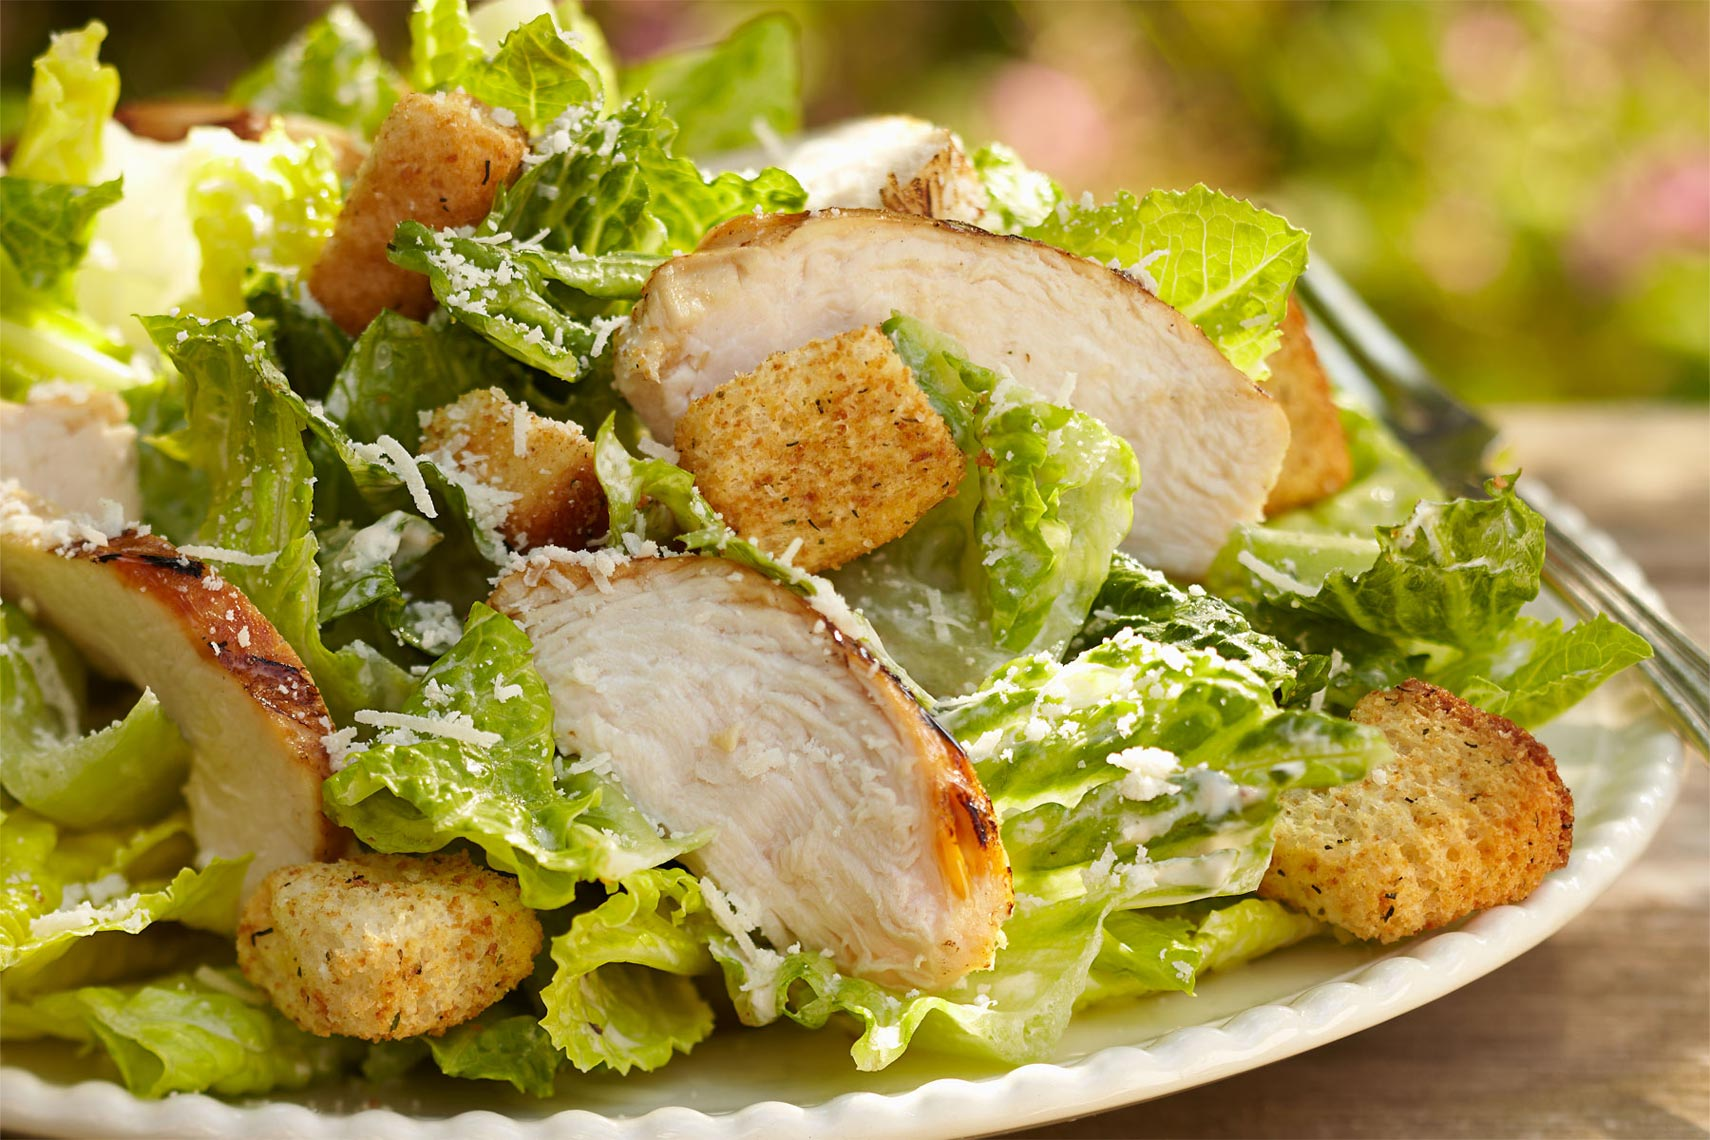 Andy-Post-Food-Photography-Chicken-Caesar-Salad